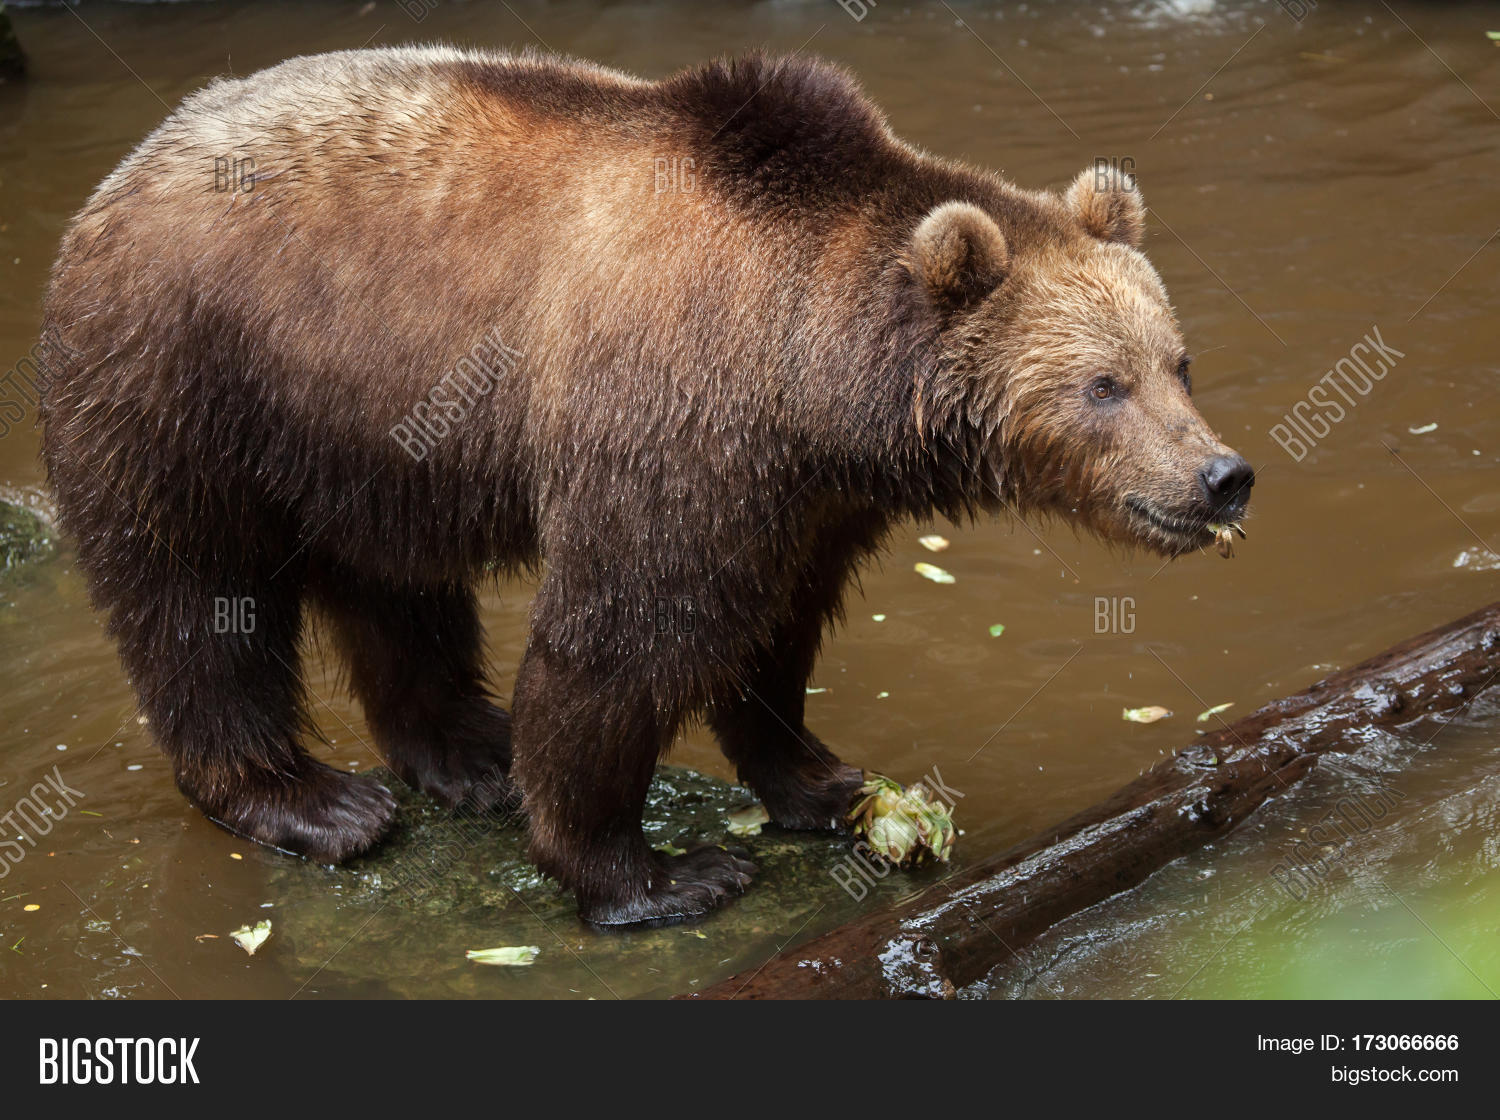 Amazing Eastern Brown Bear Pictures & Backgrounds